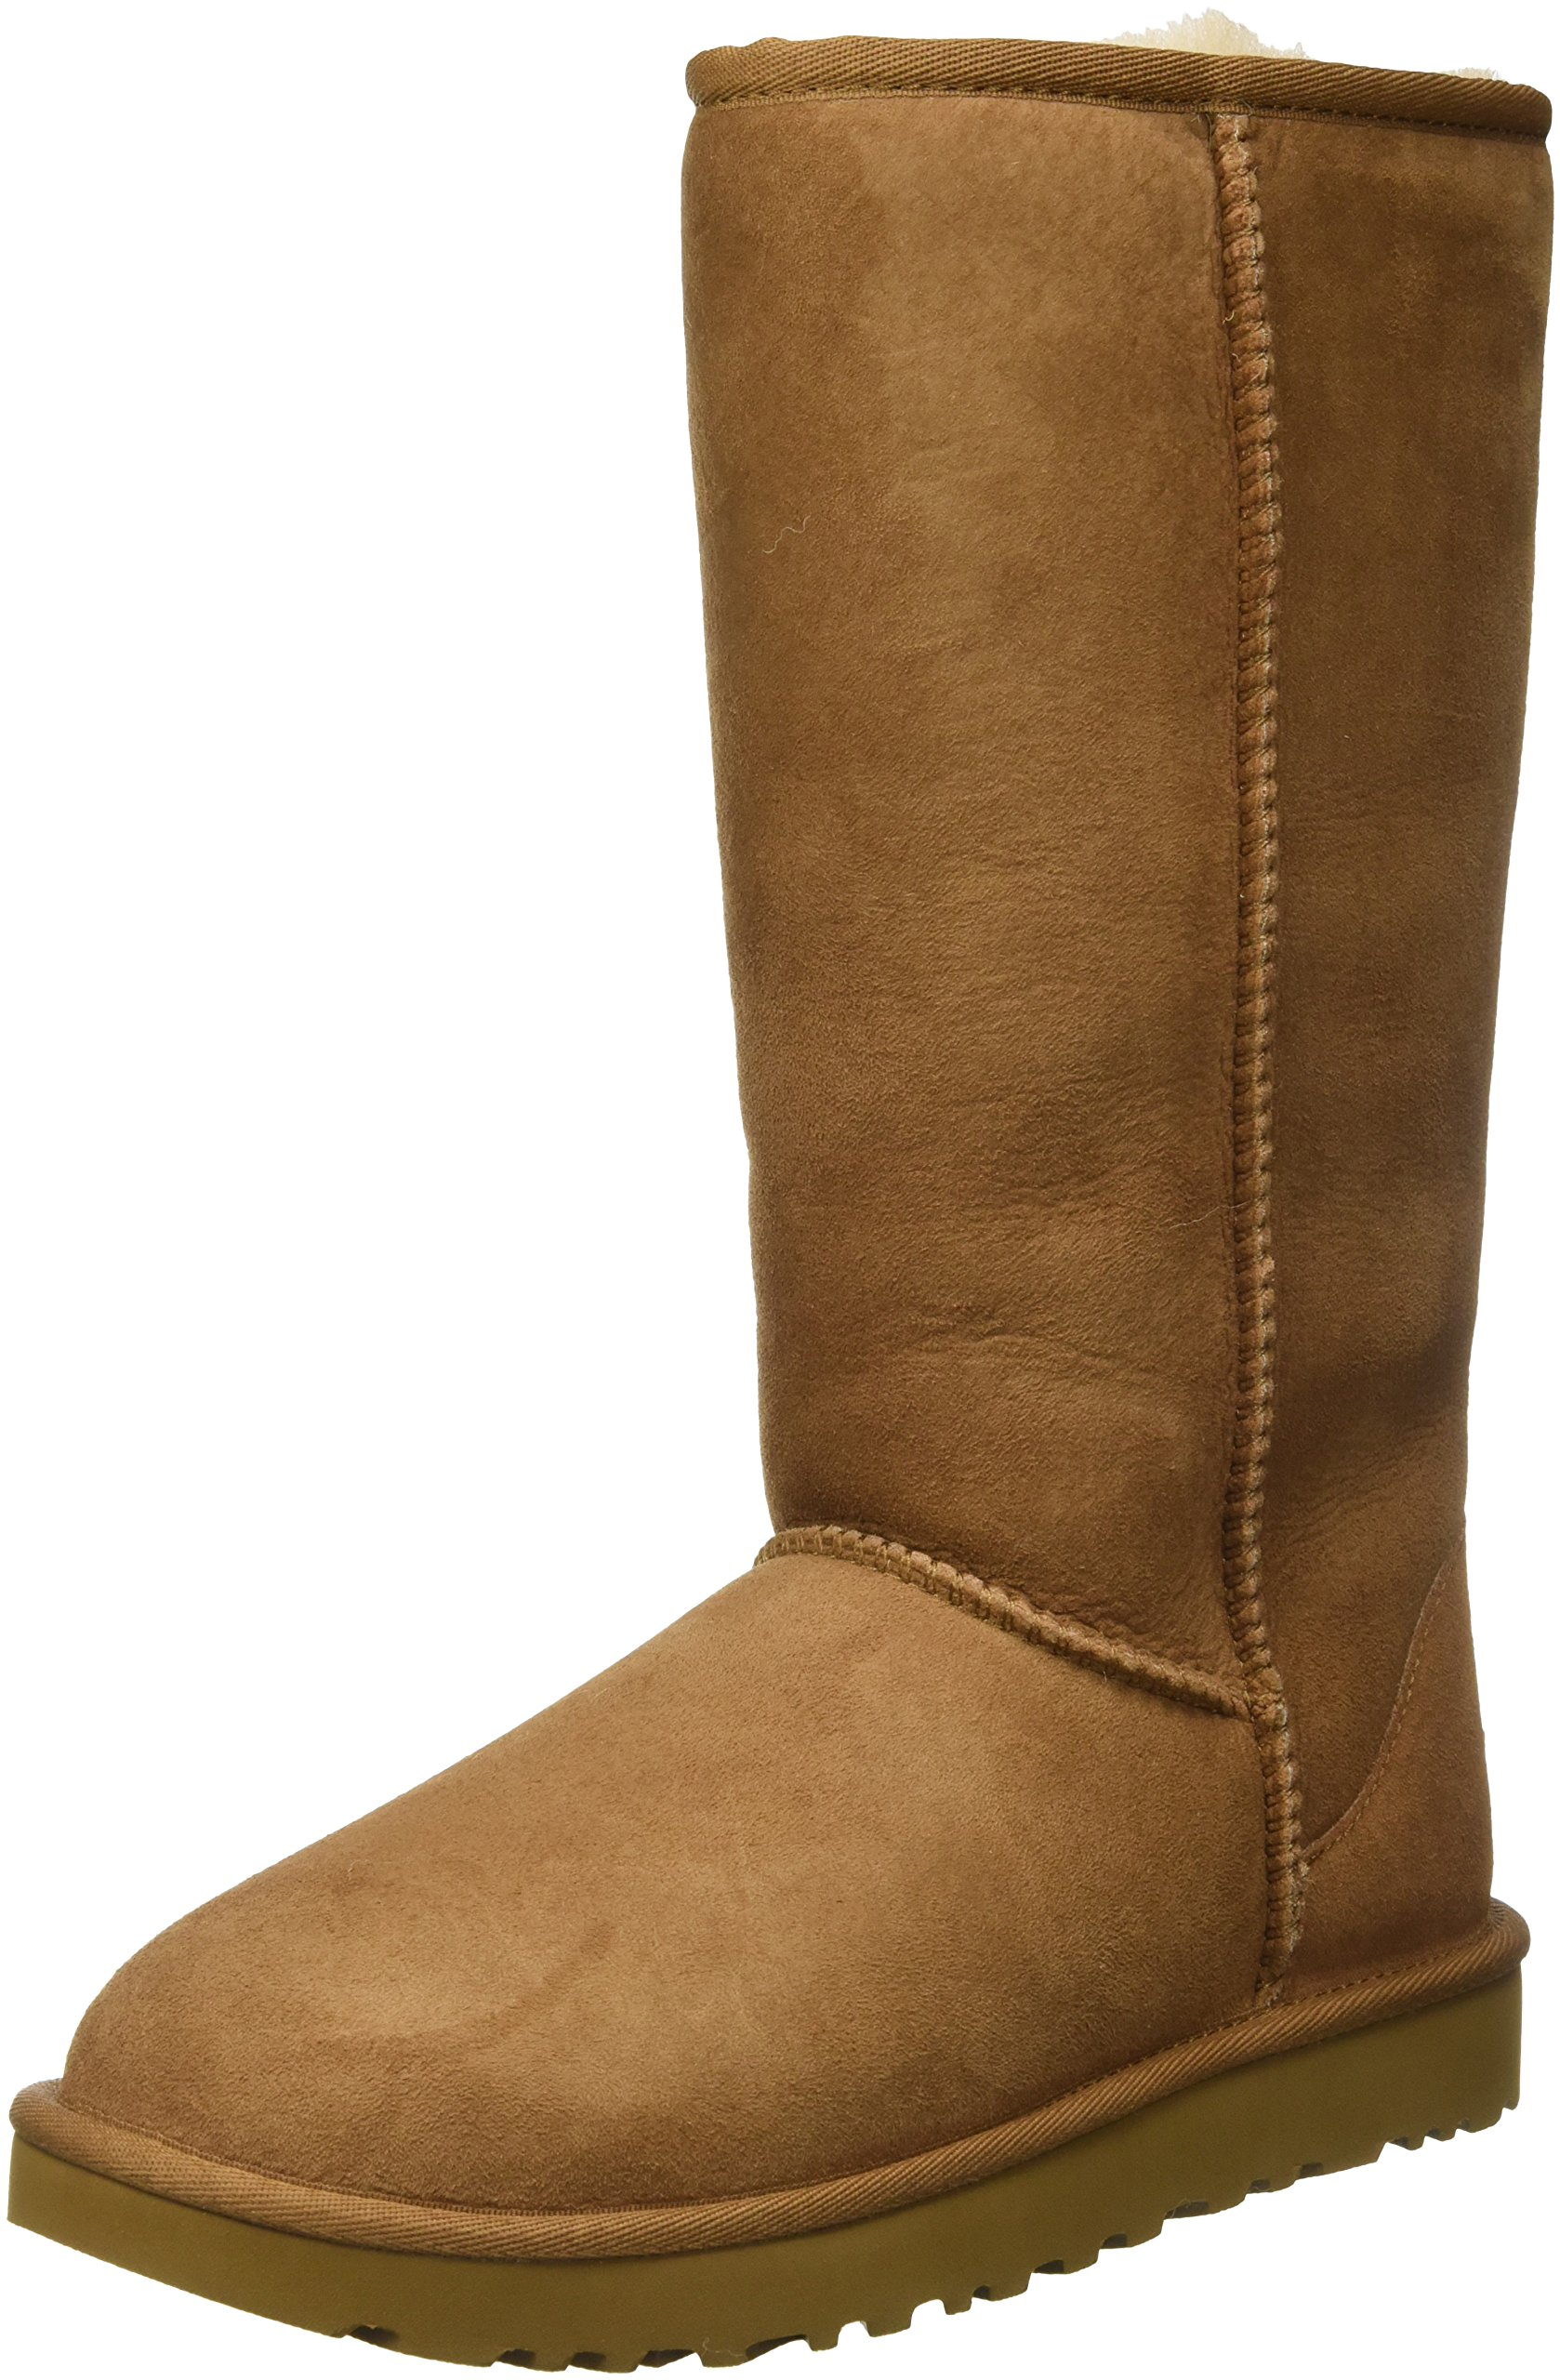 UGG Women's Classic Tall II Winter Boot, Chestnut, 9 B US by UGG